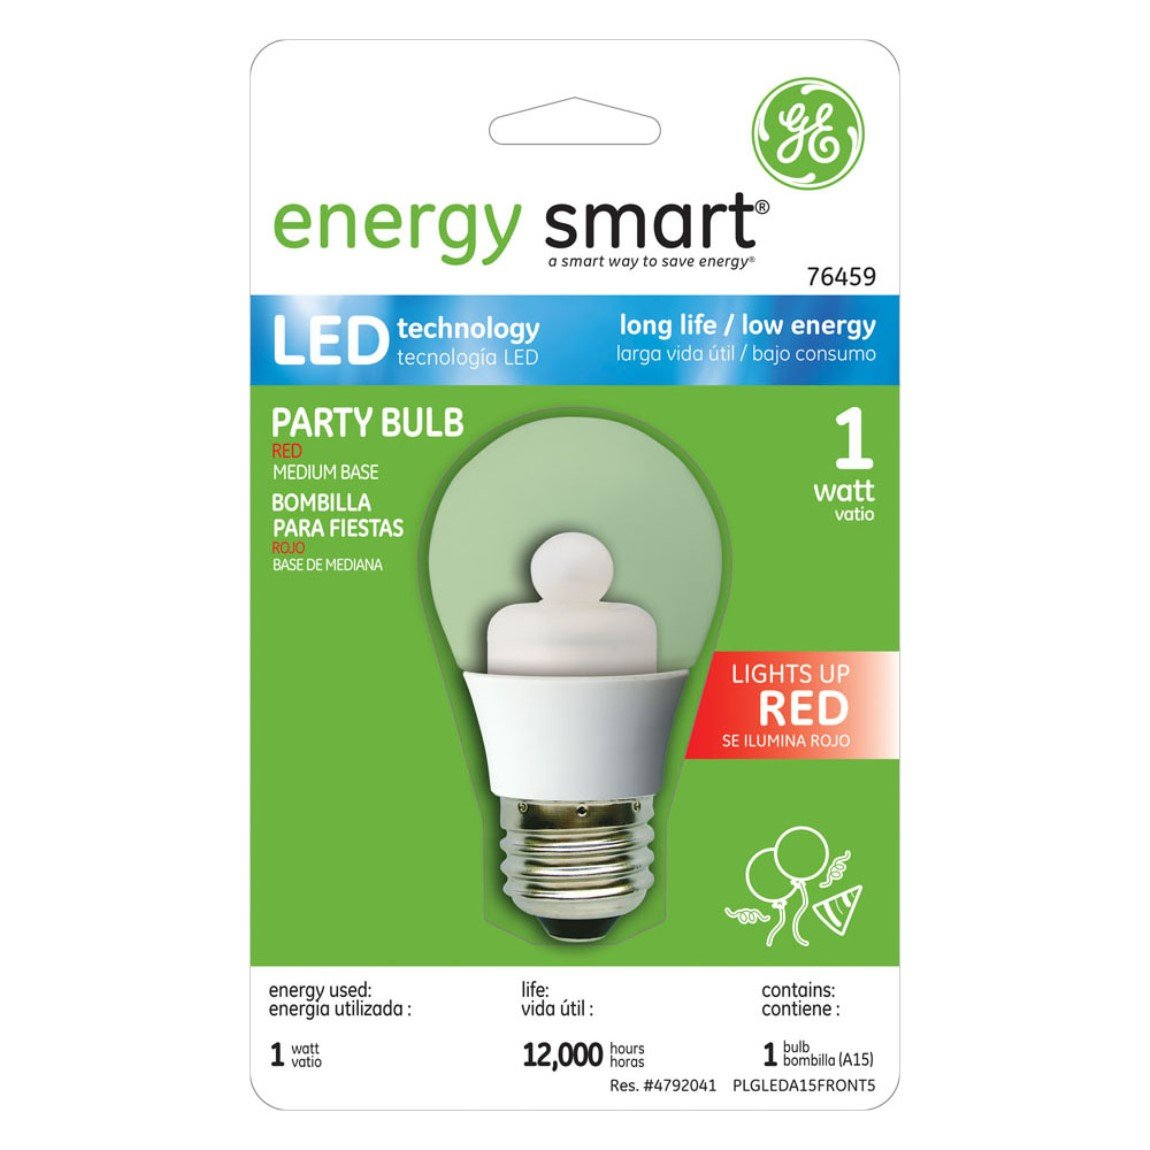 GE Lighting 76459 Energy Smart Color LED Party Light 1-Watt (15-Watt Equivalent) Red A15 Light Bulb with Medium Base, 1-Pack - Led Household Light Bulbs ...